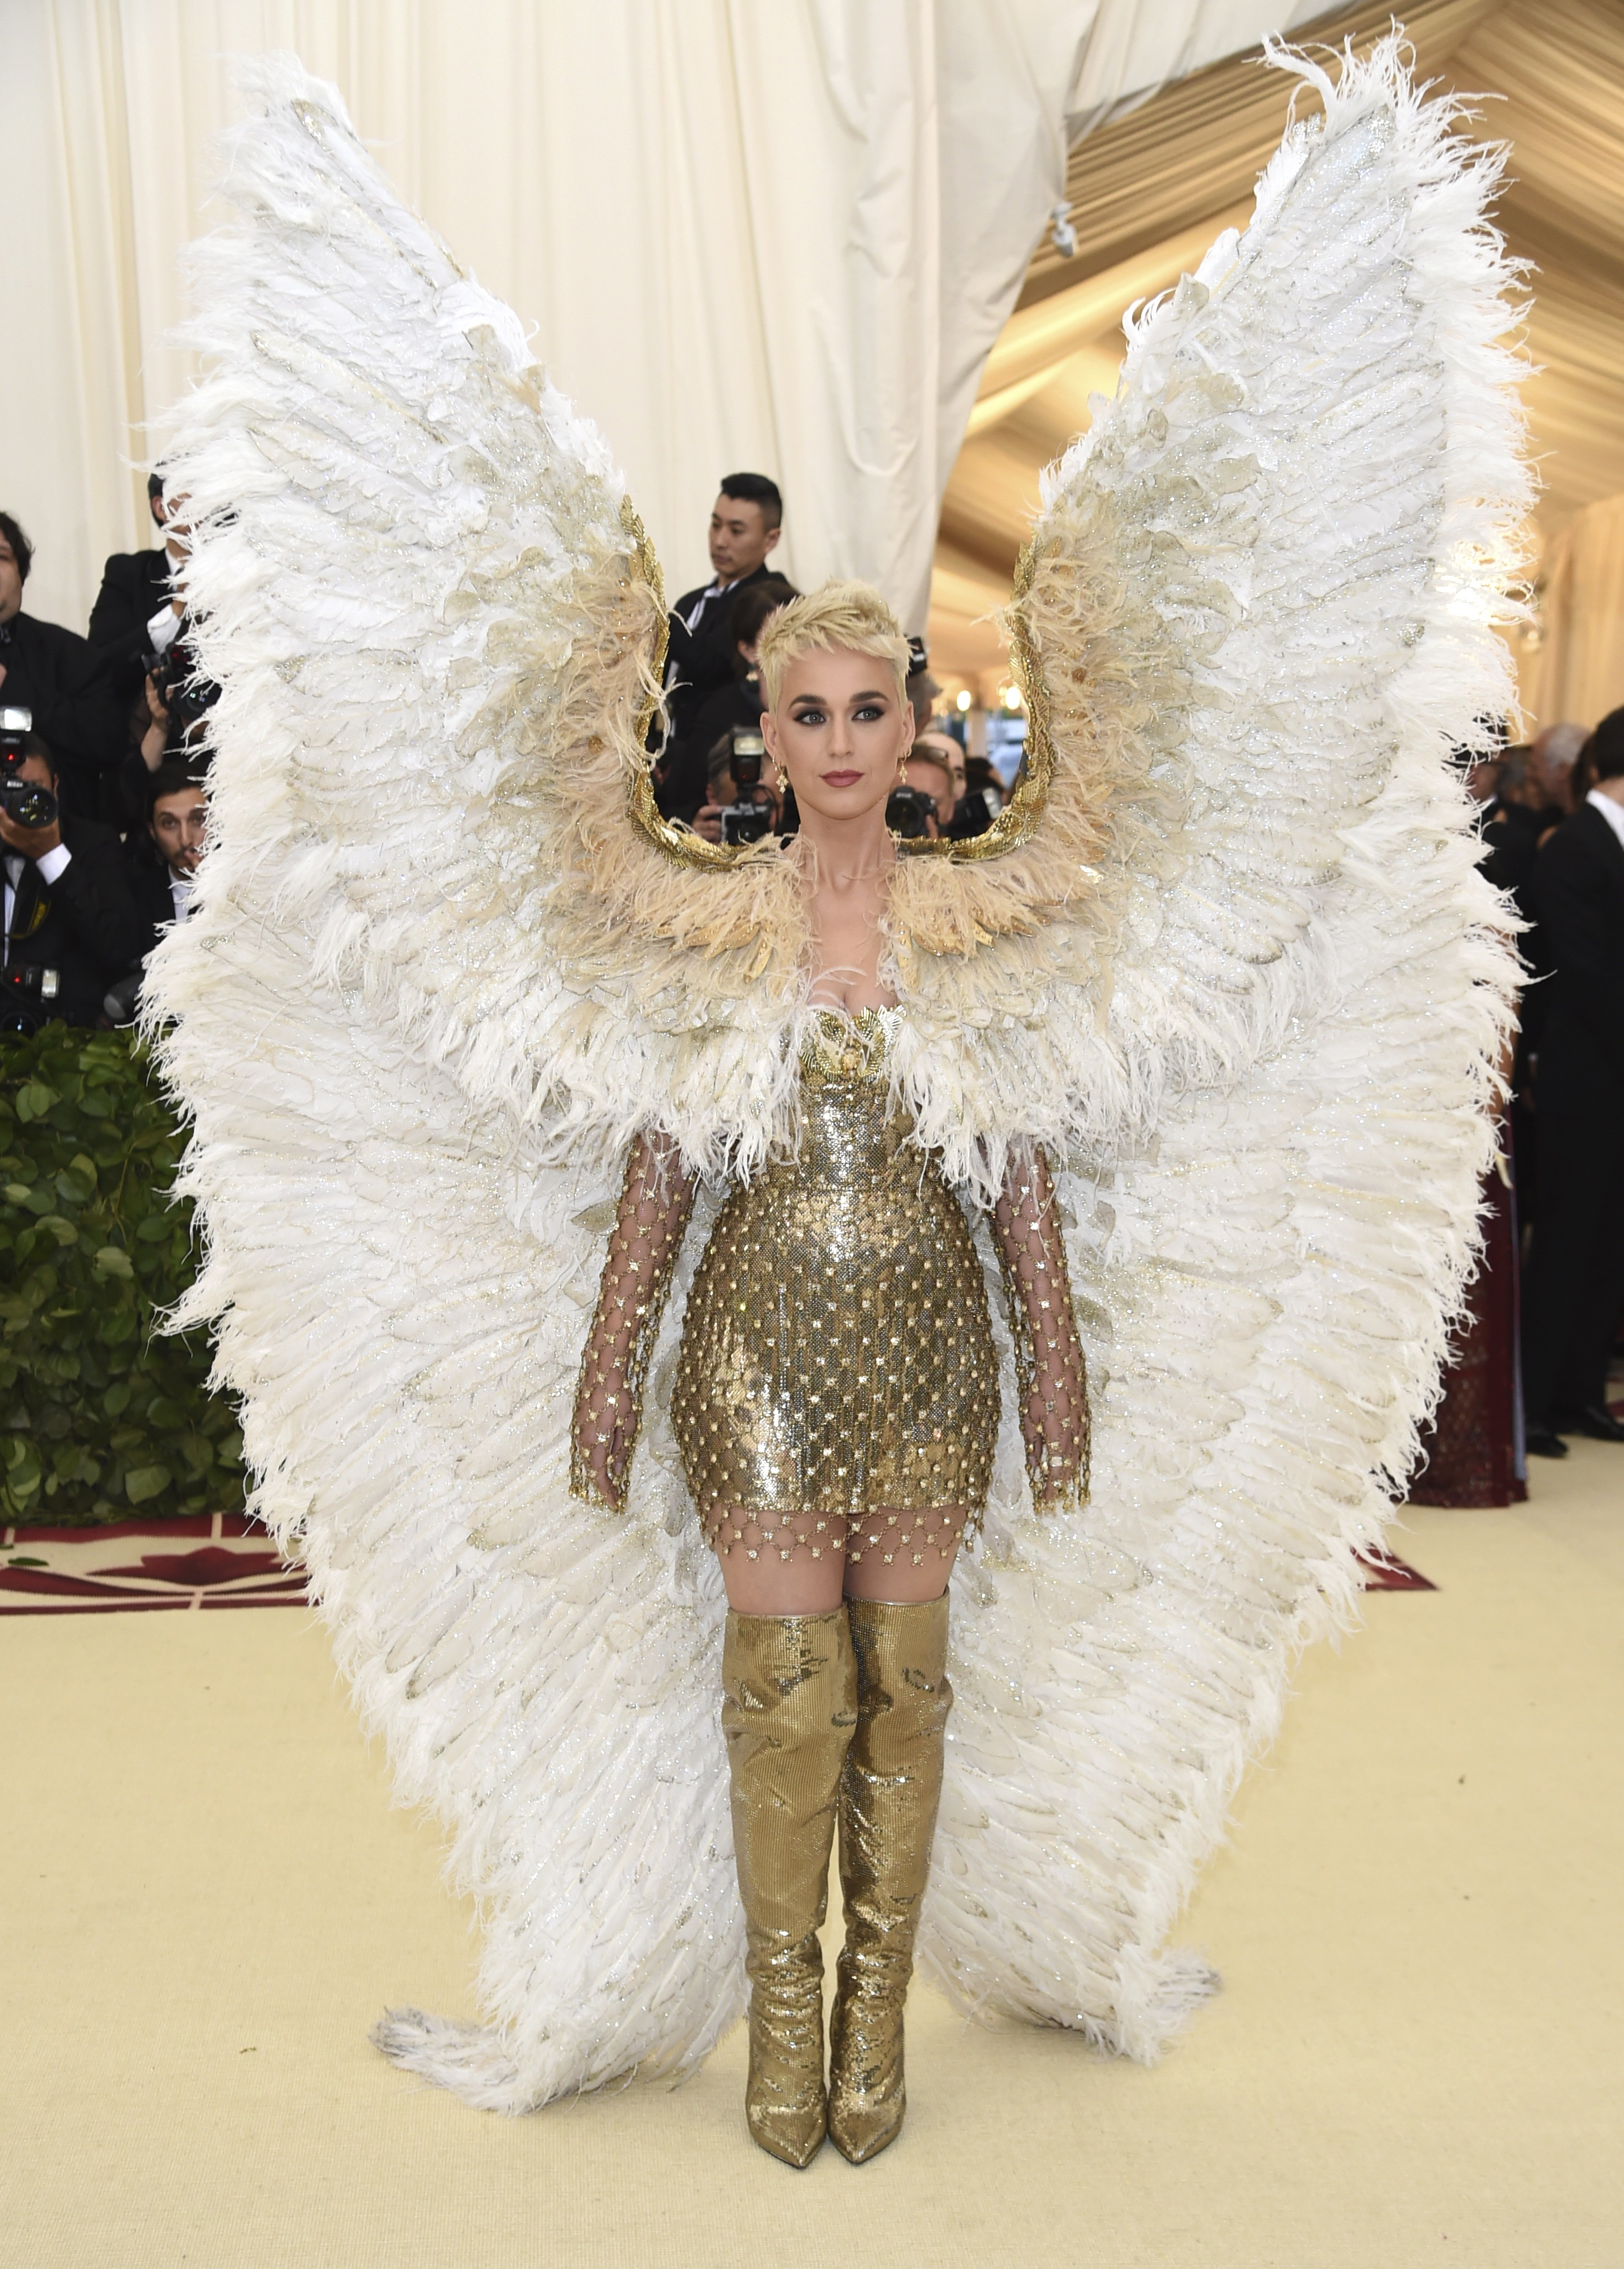 <div class='meta'><div class='origin-logo' data-origin='none'></div><span class='caption-text' data-credit='Evan Agostini/Invision/AP'>Katy Perry (Photo by Evan Agostini/Invision/AP)</span></div>